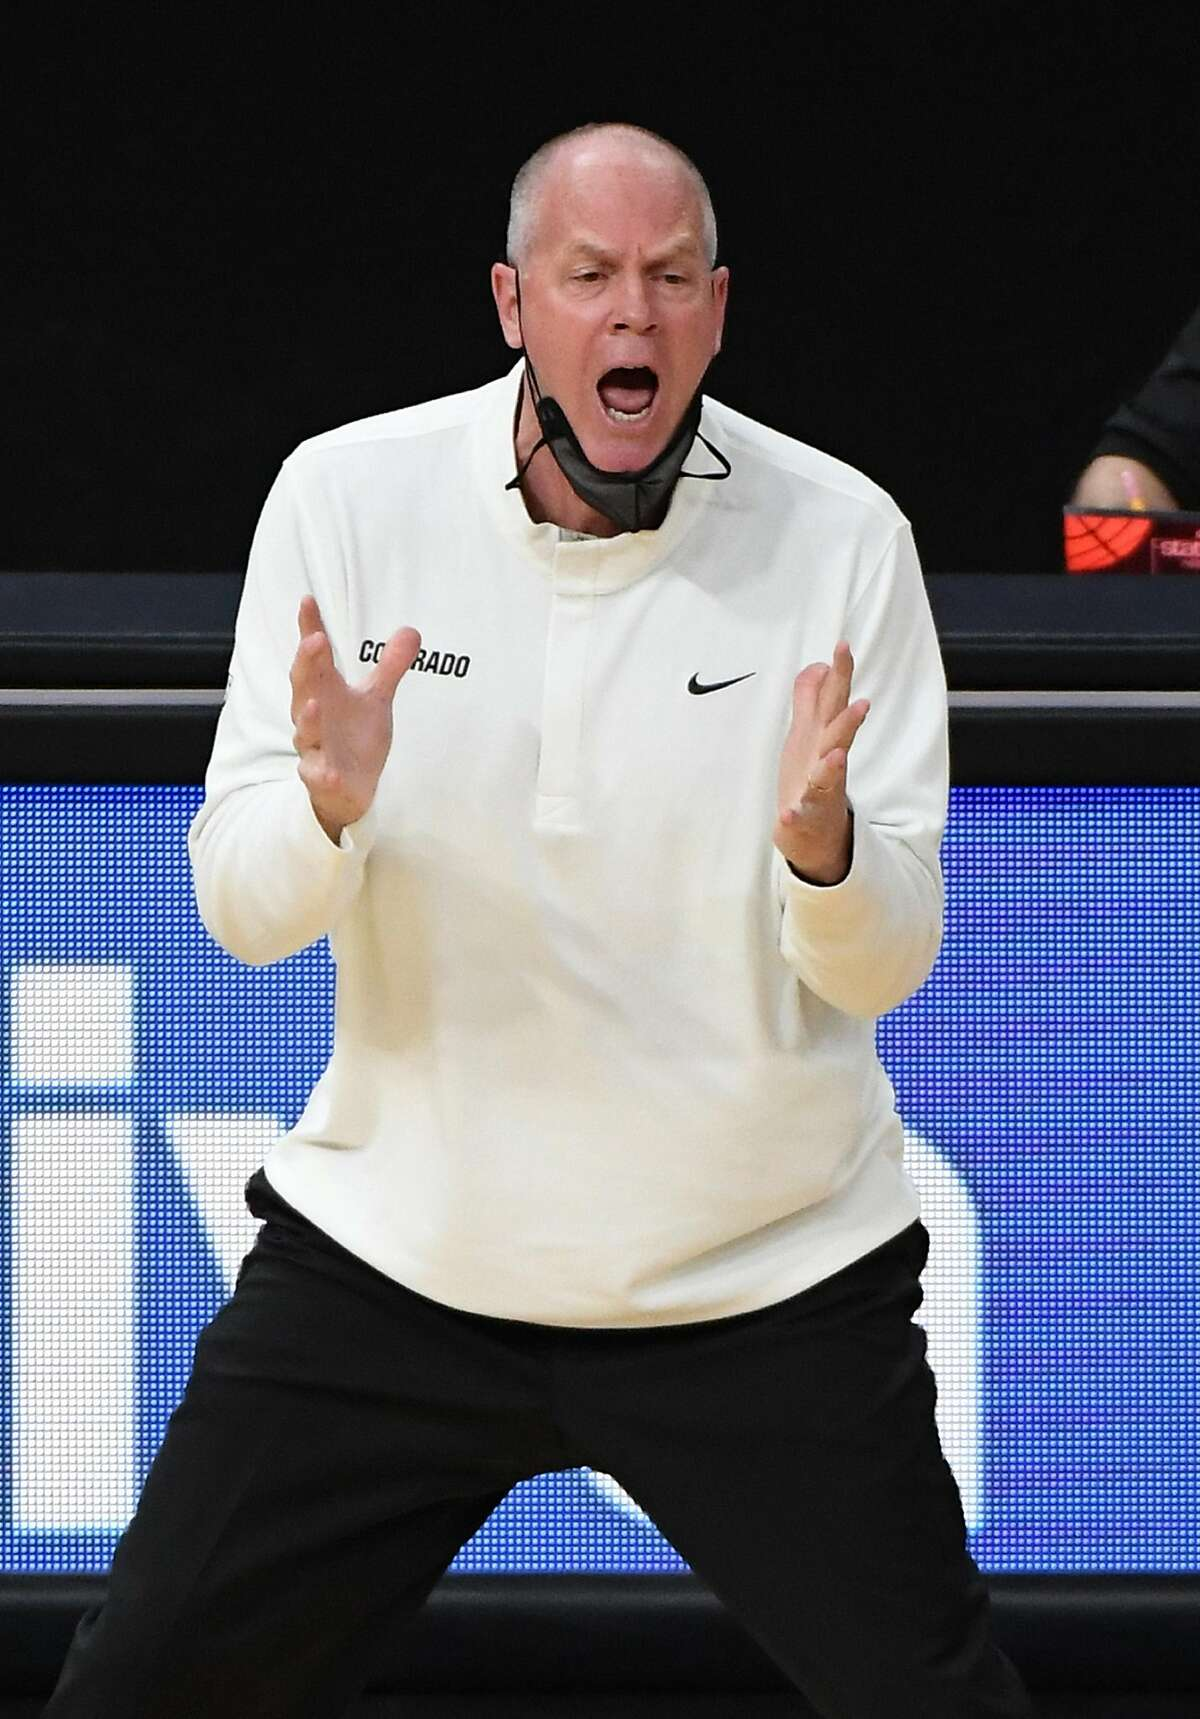 LAS VEGAS, NEVADA - MARCH 11: Head coach Tad Boyle of the Colorado Buffaloes reacts as his team takes on the California Golden Bears during the quarterfinals of the Pac-12 Conference basketball tournament on March 11, 2021 in Las Vegas, Nevada. (Photo by Ethan Miller/Getty Images)